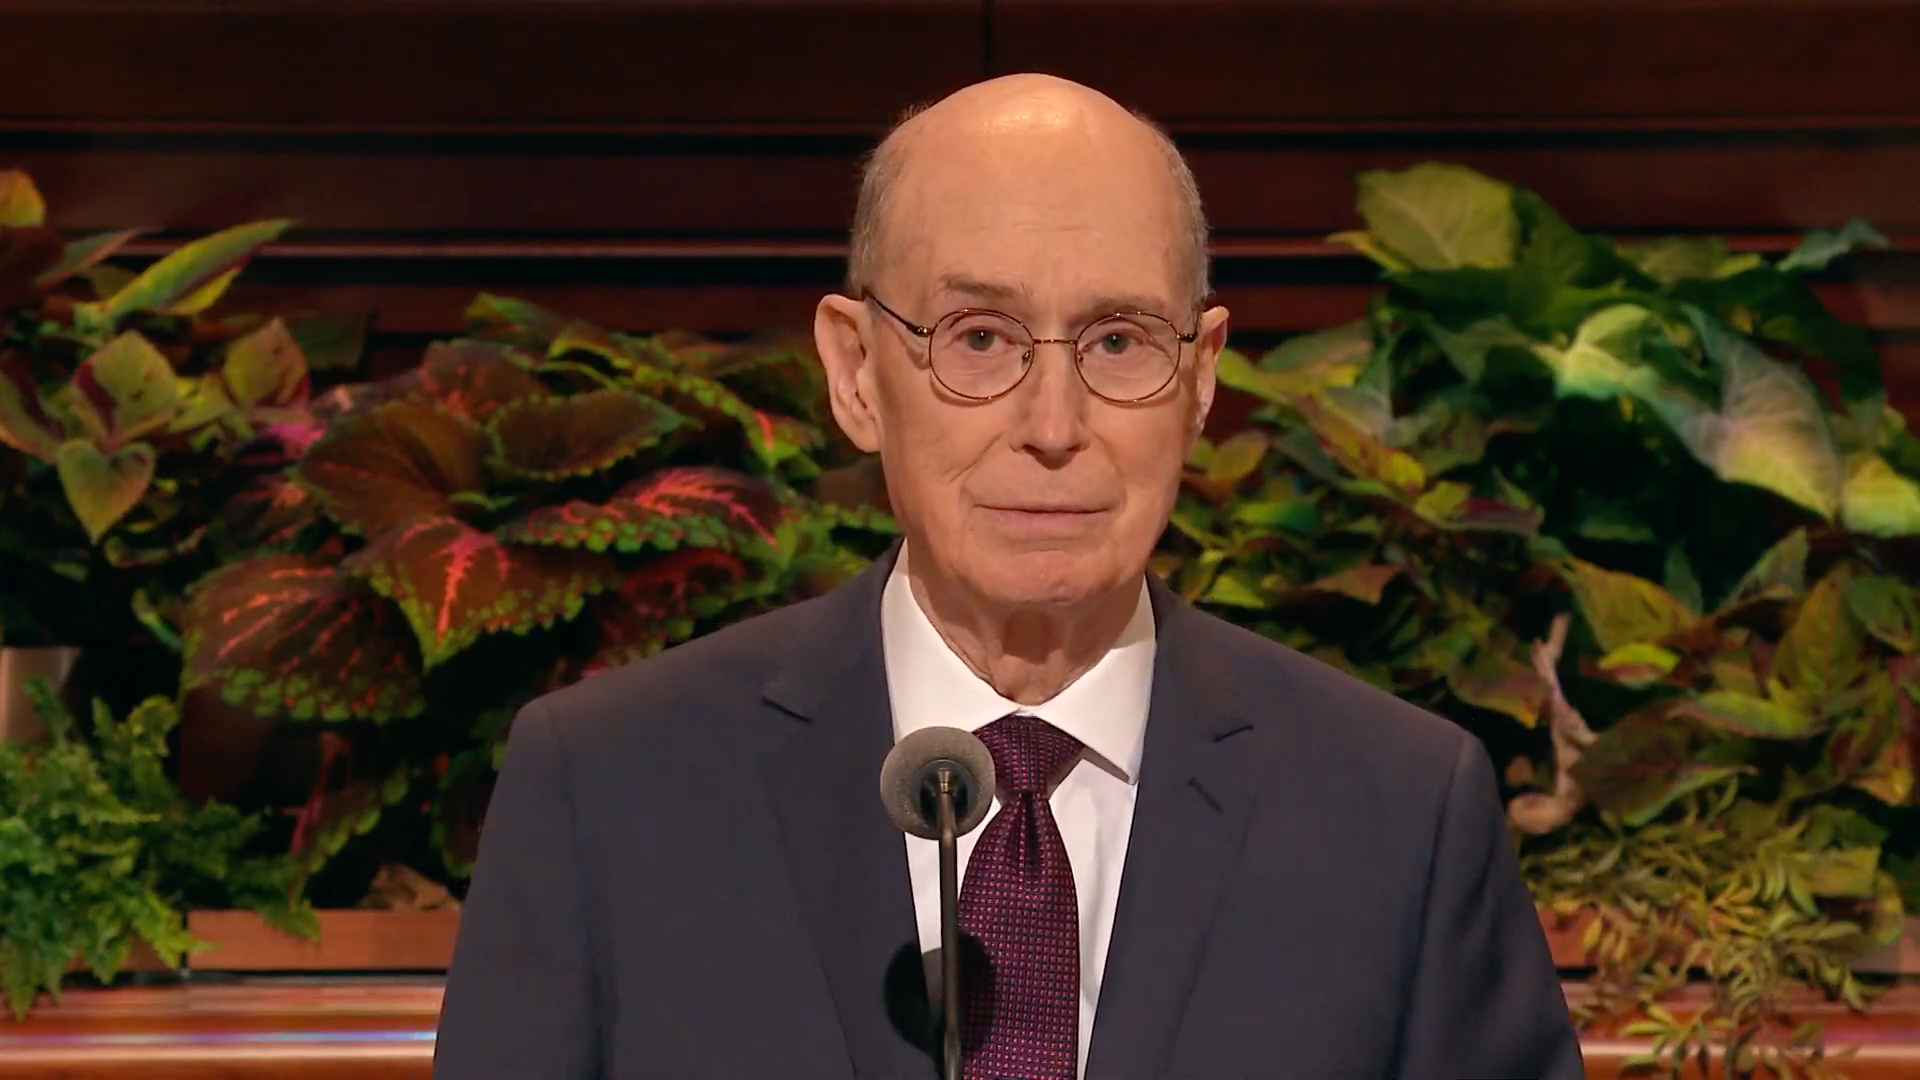 President Henry B. Eyring, second counselor in the First Presidency, speaks during the Sunday afternoon session in the 189th Semiannual General Conference of the Church on Sunday, Oct. 6, 2019.